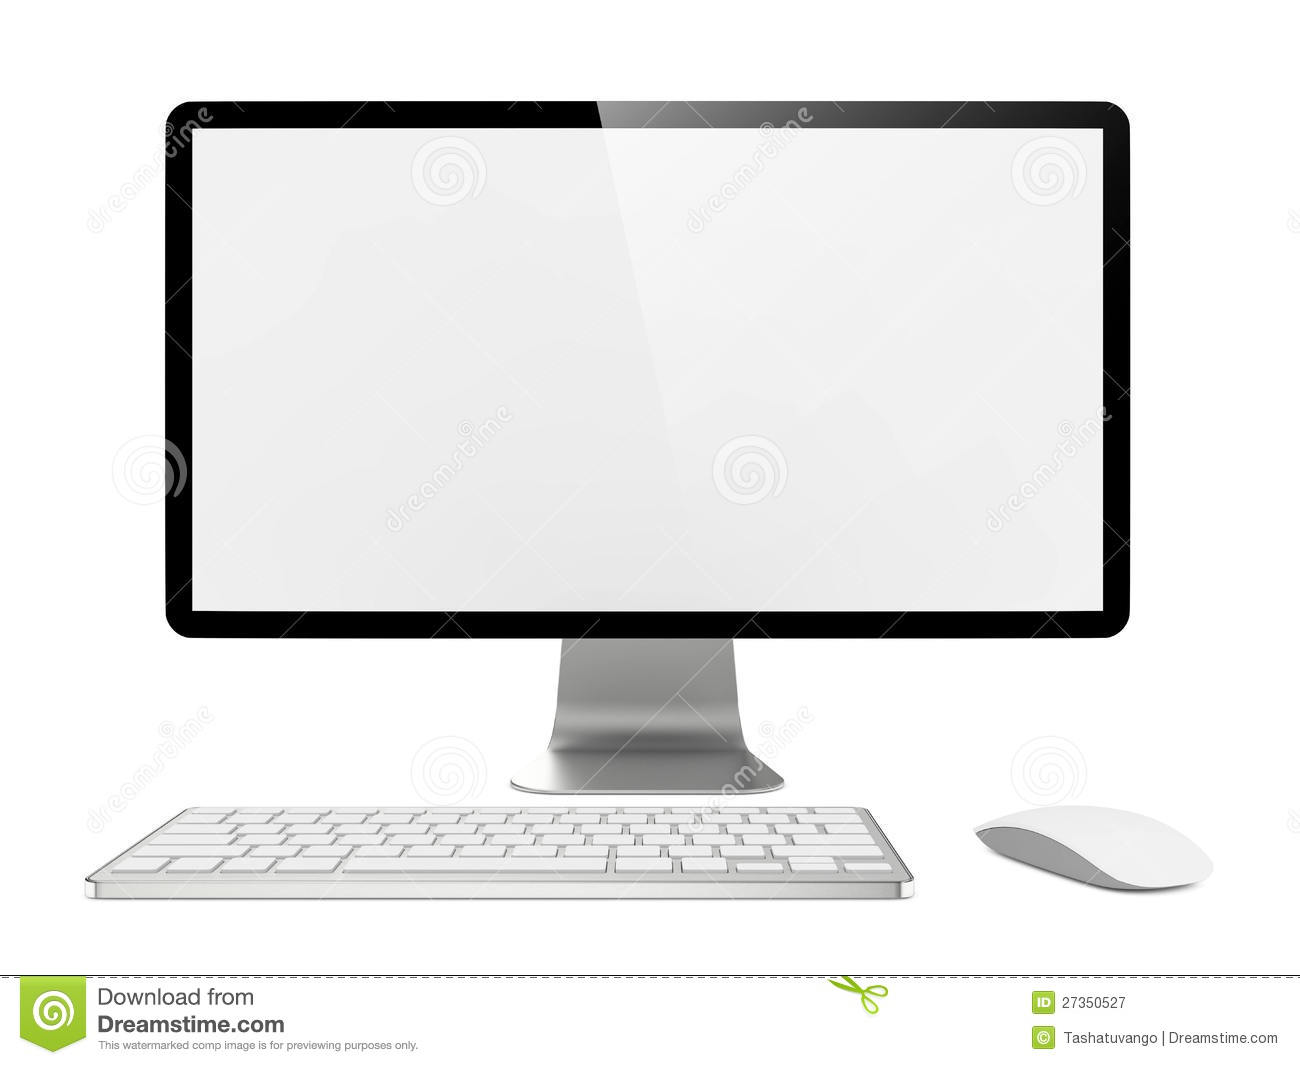 ... Free Stock Photography: Computer Monitor with Mouse and Keyboard